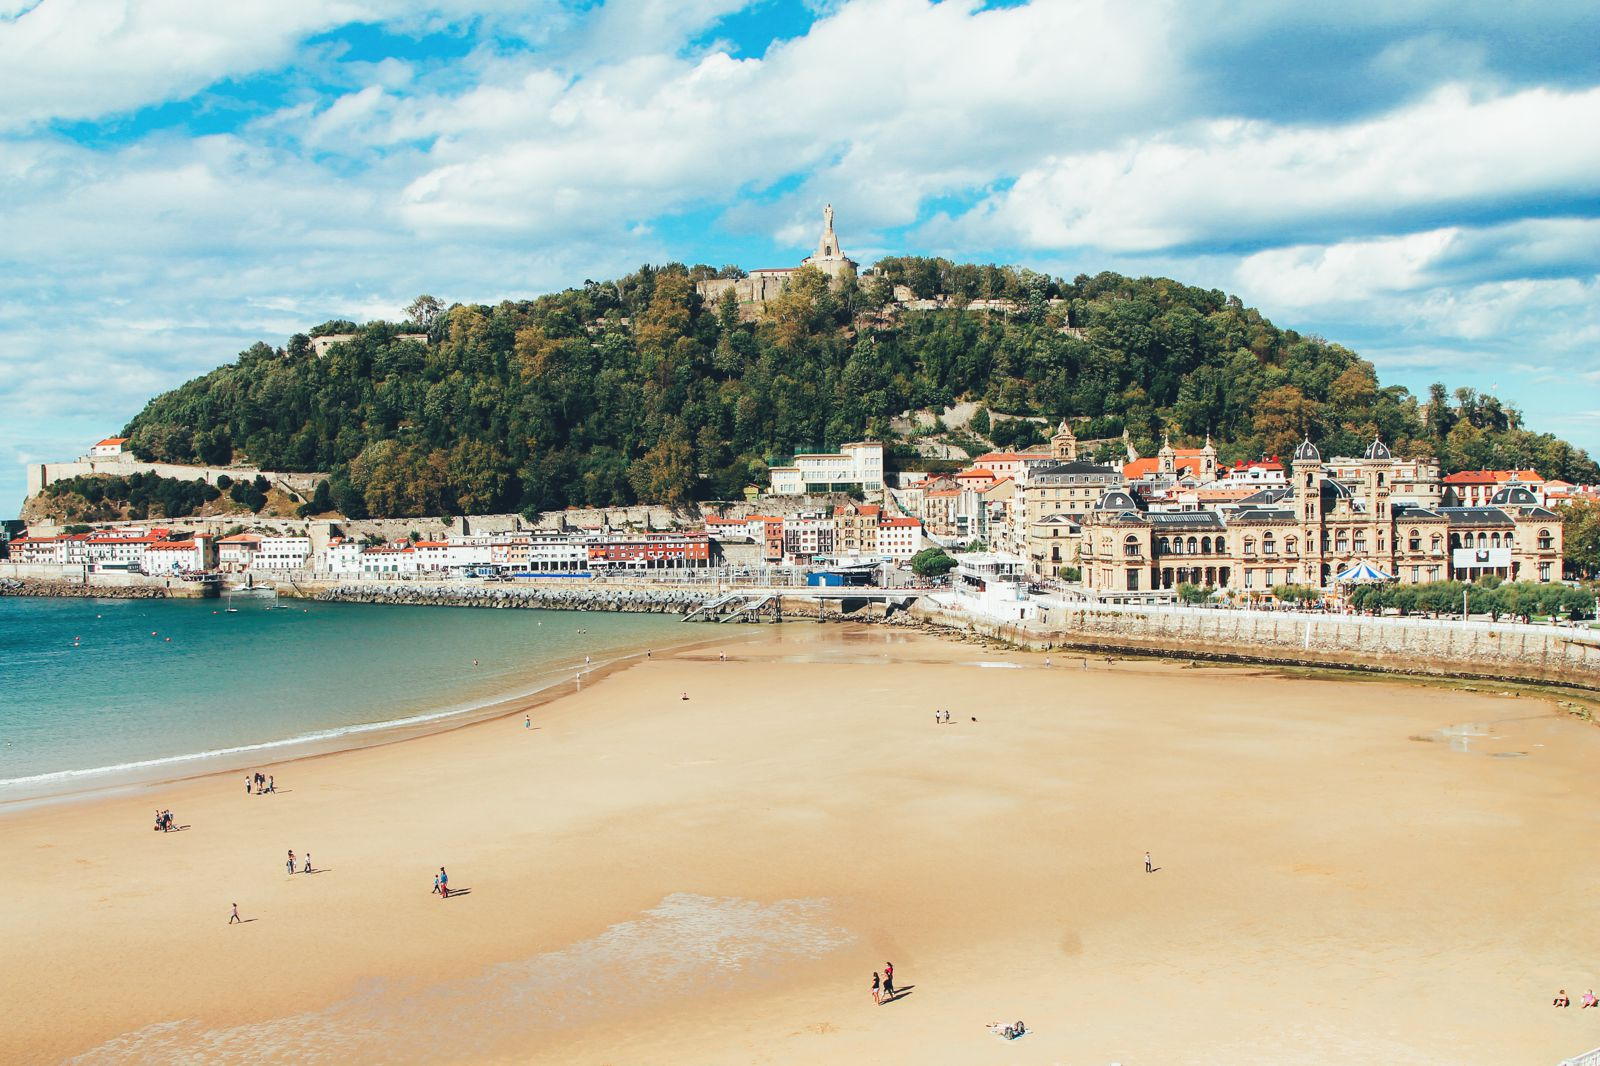 The Most Beautiful City in Spain. San Sebastian, Gipuzkoa, Spain, Hotel Londres (18)